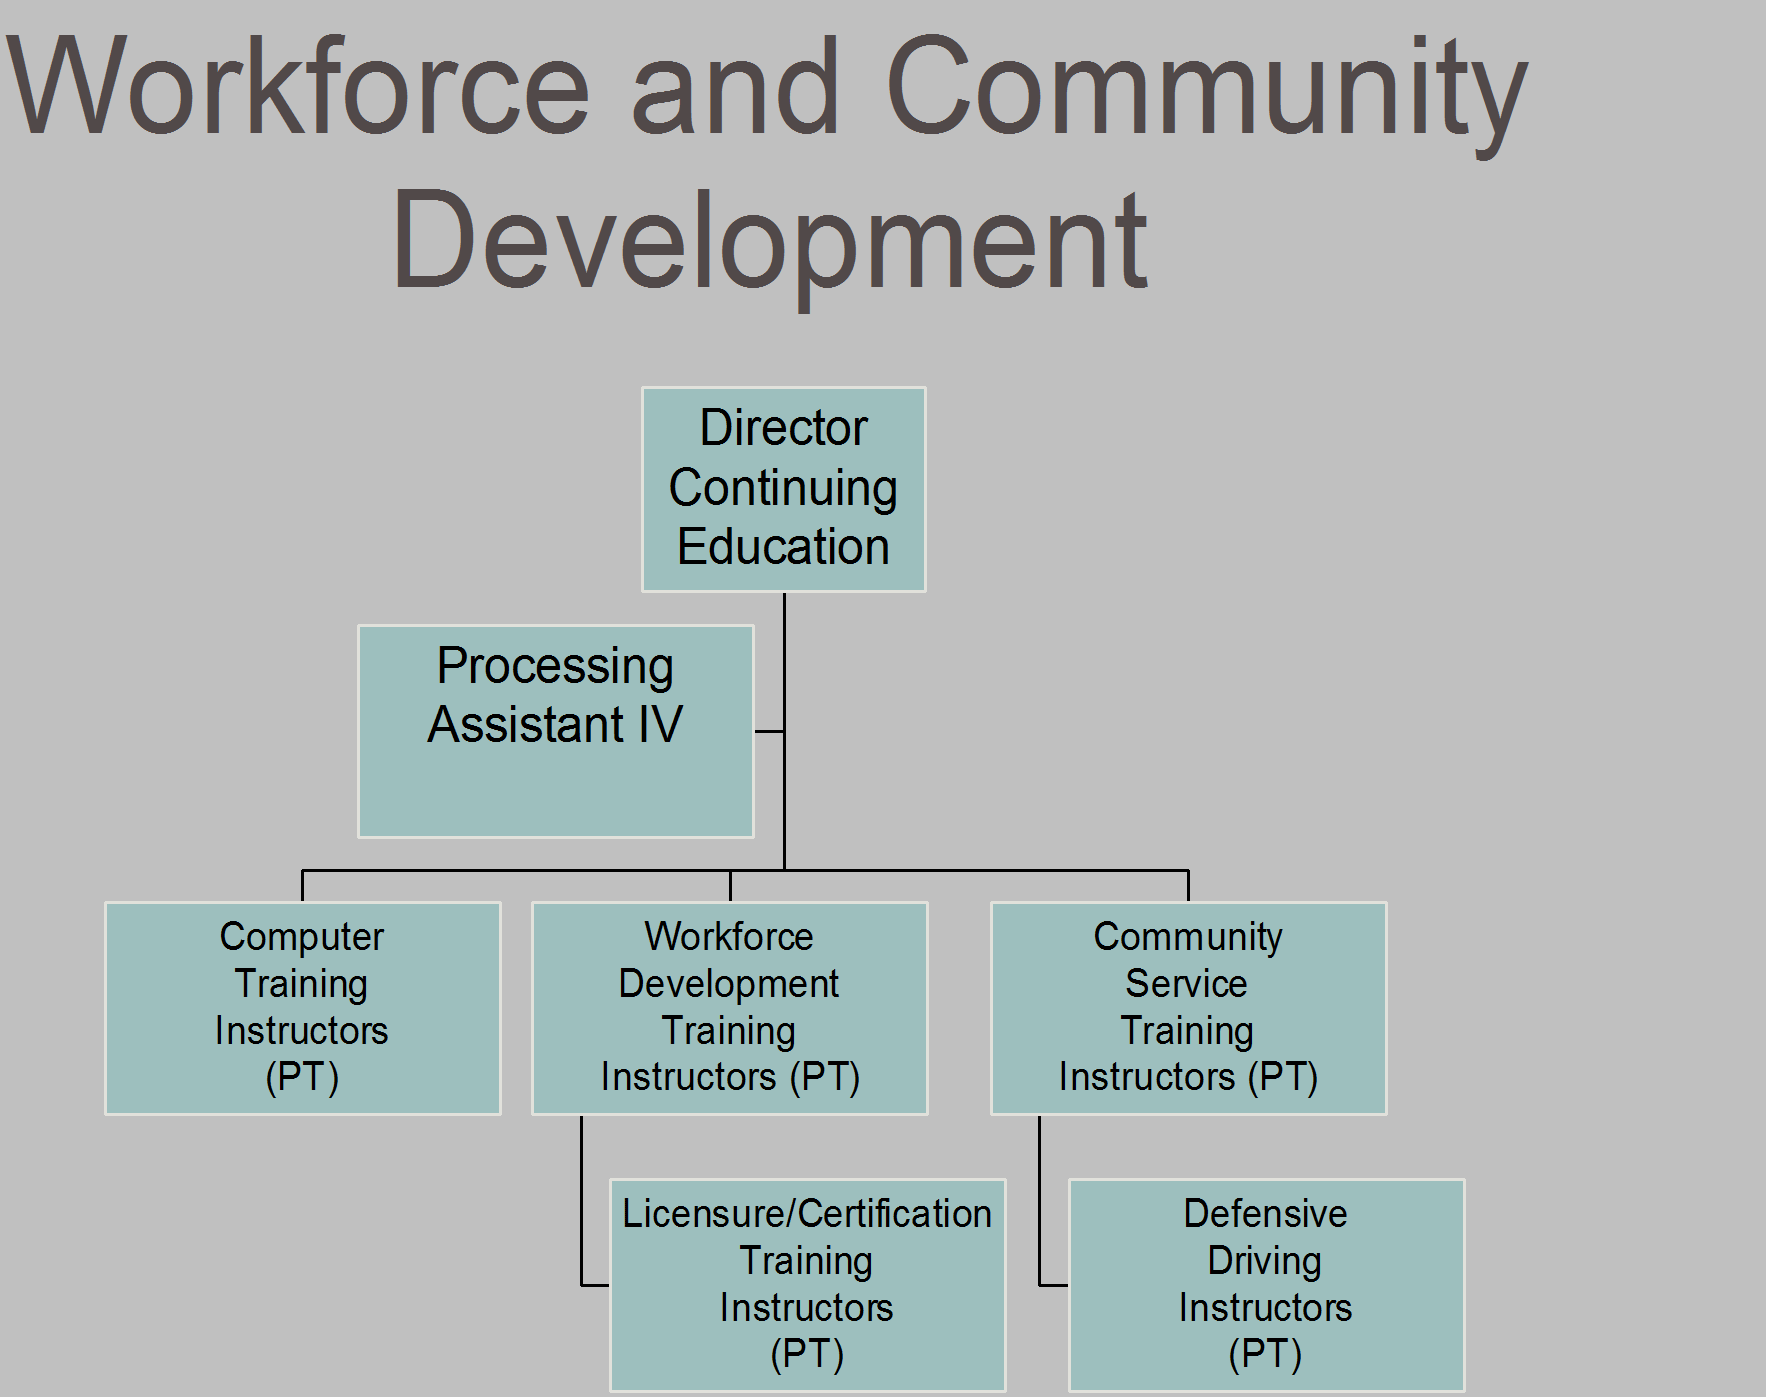 Workforce and Community Development 3